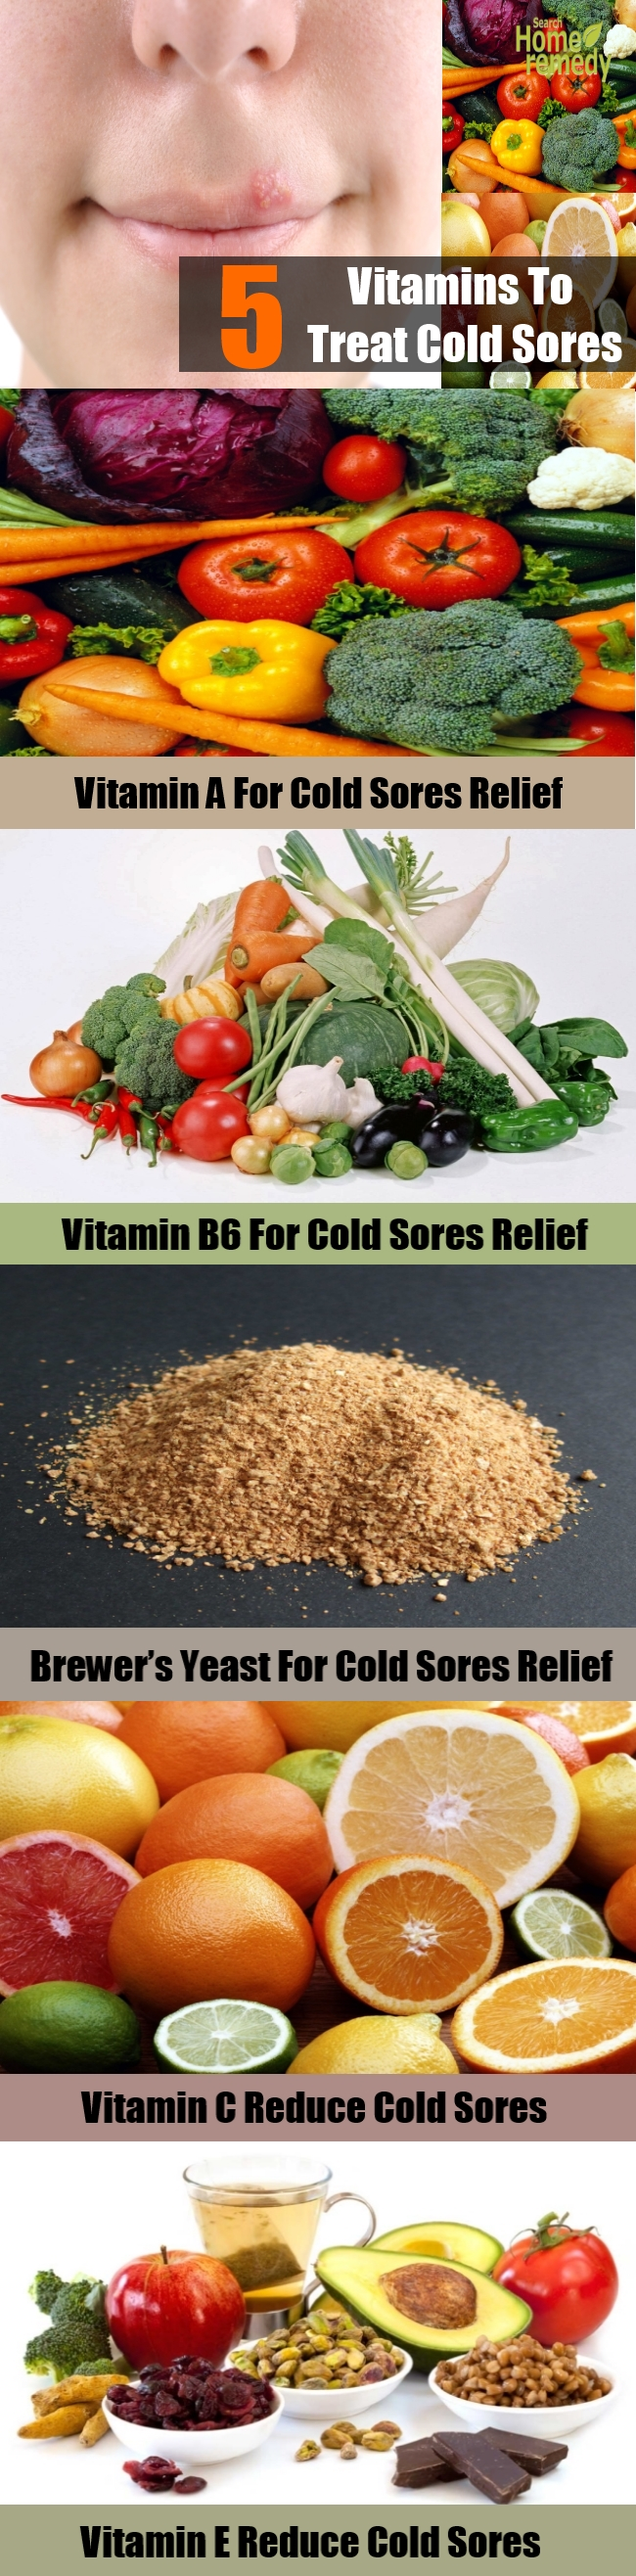 5 Vitamins To Treat Cold Sores